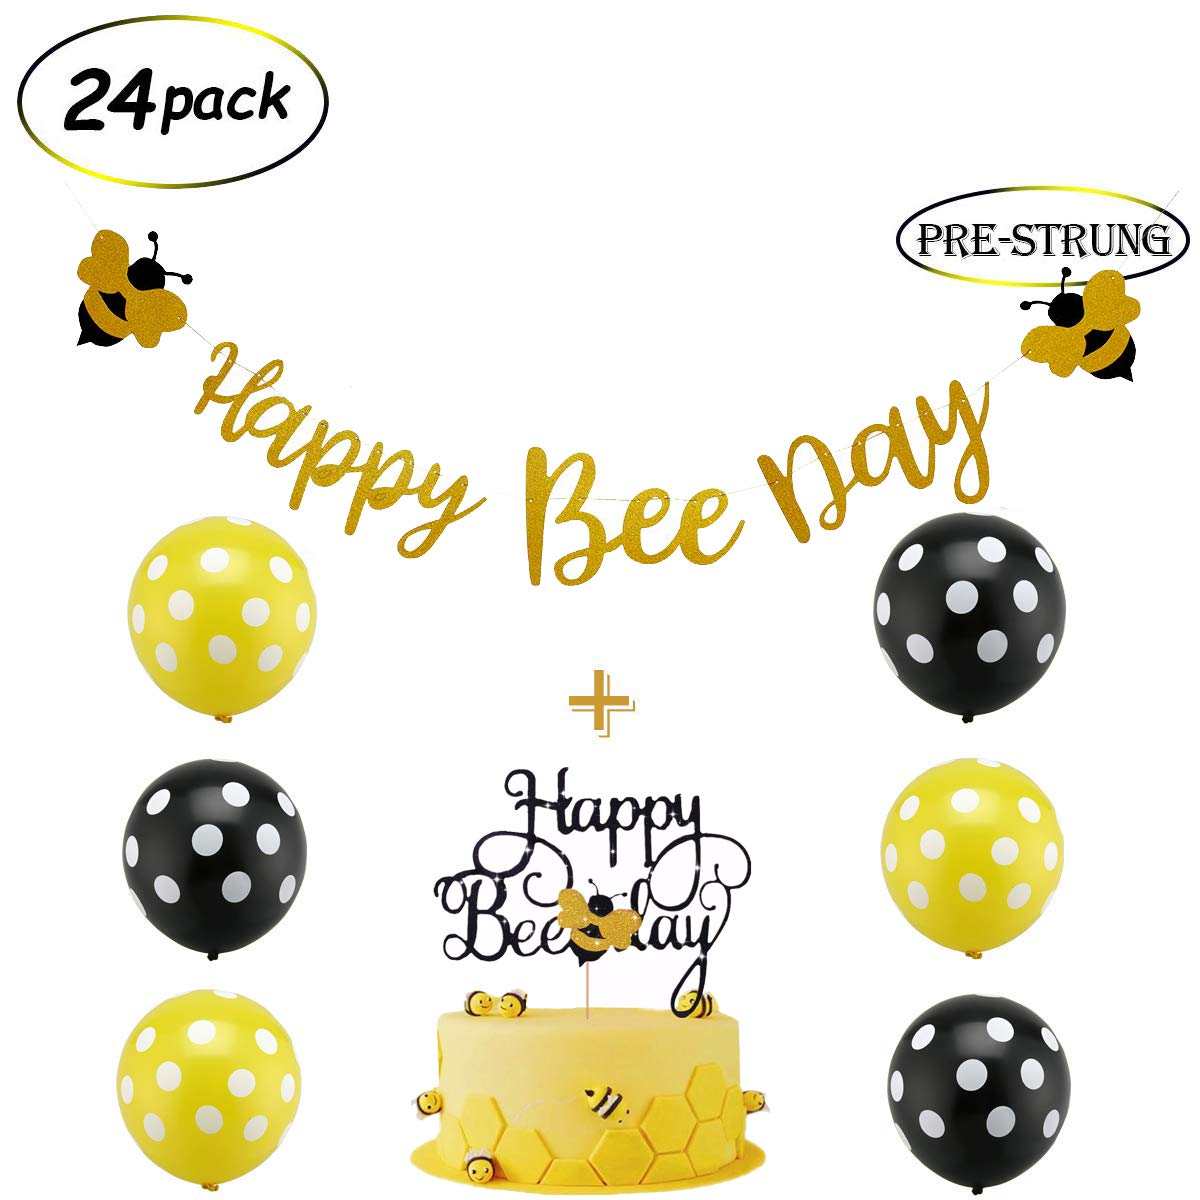 24 Pack Happy Bee Day Gold Glitter Banner & Happy Bee Day Cake Topper Bumblebee Party Decoration Bumble Bee Balloons for Honey Bee Themed Birthday Party Baby Shower Supplies by zorpia